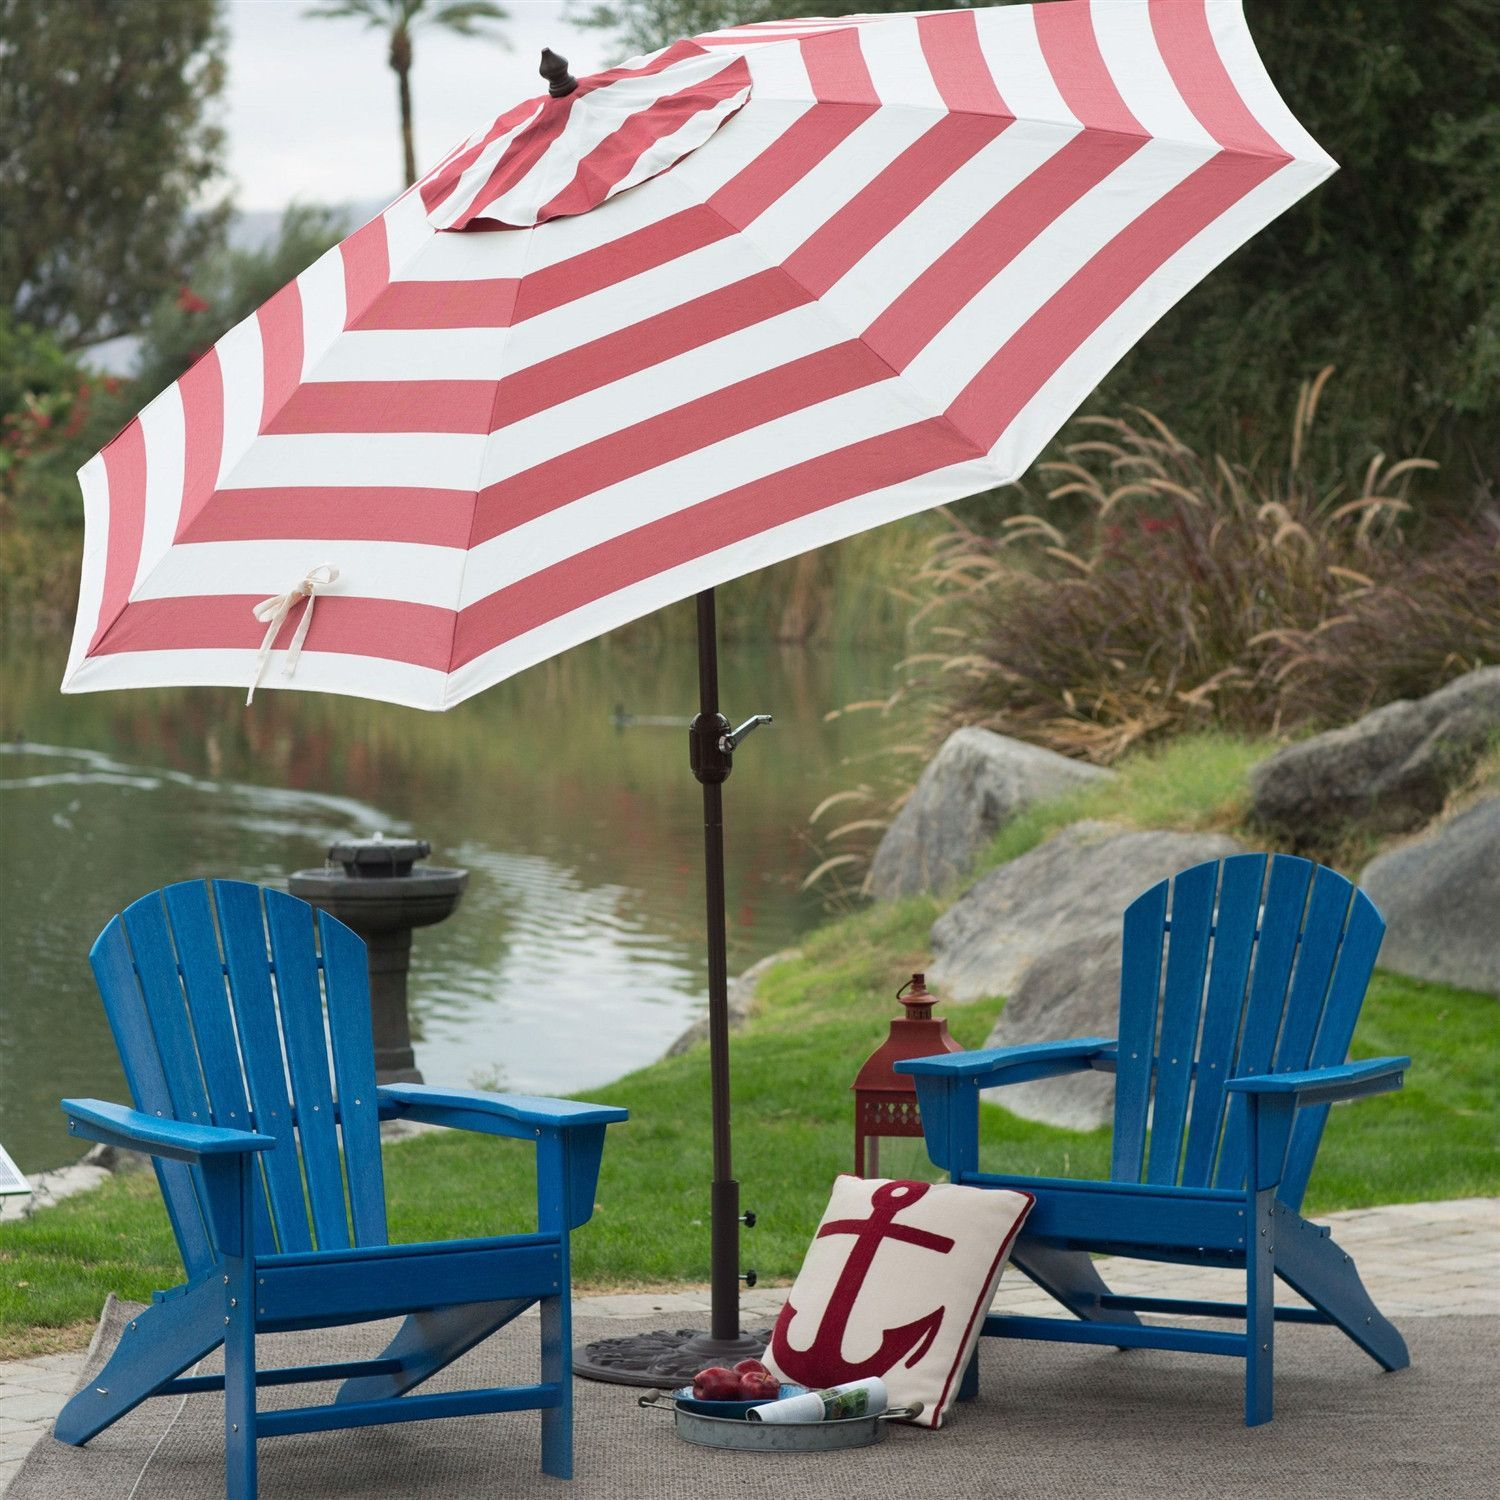 Bon Outdoor 9 Ft Metal Patio Umbrella With Tilt And Crank Lift In Red And White